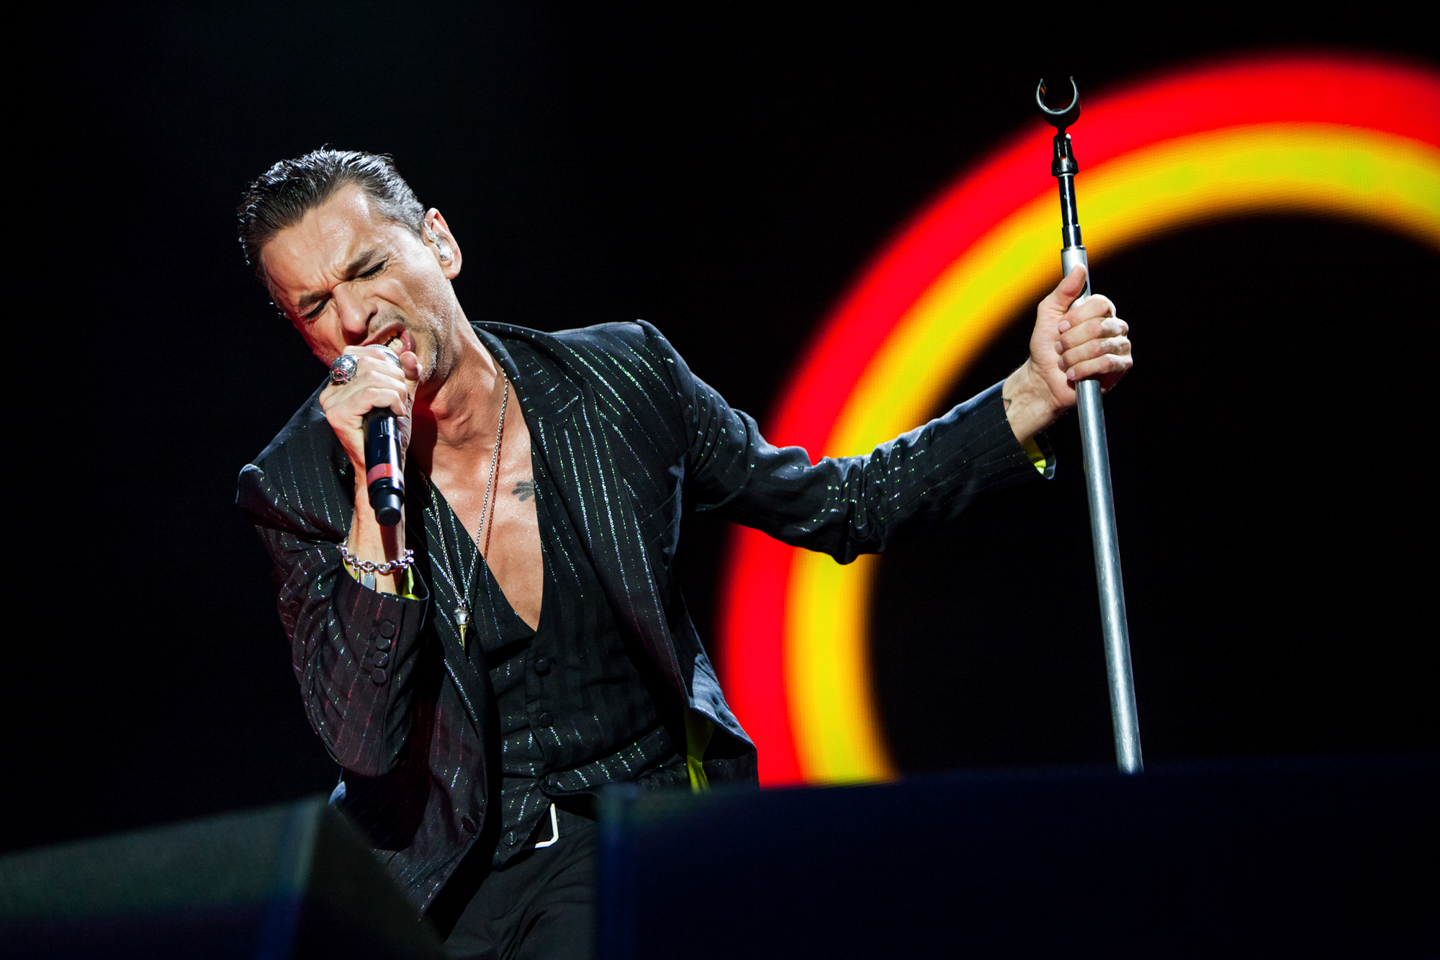 Depeche-mode-milano-2013-rocks-and-shots